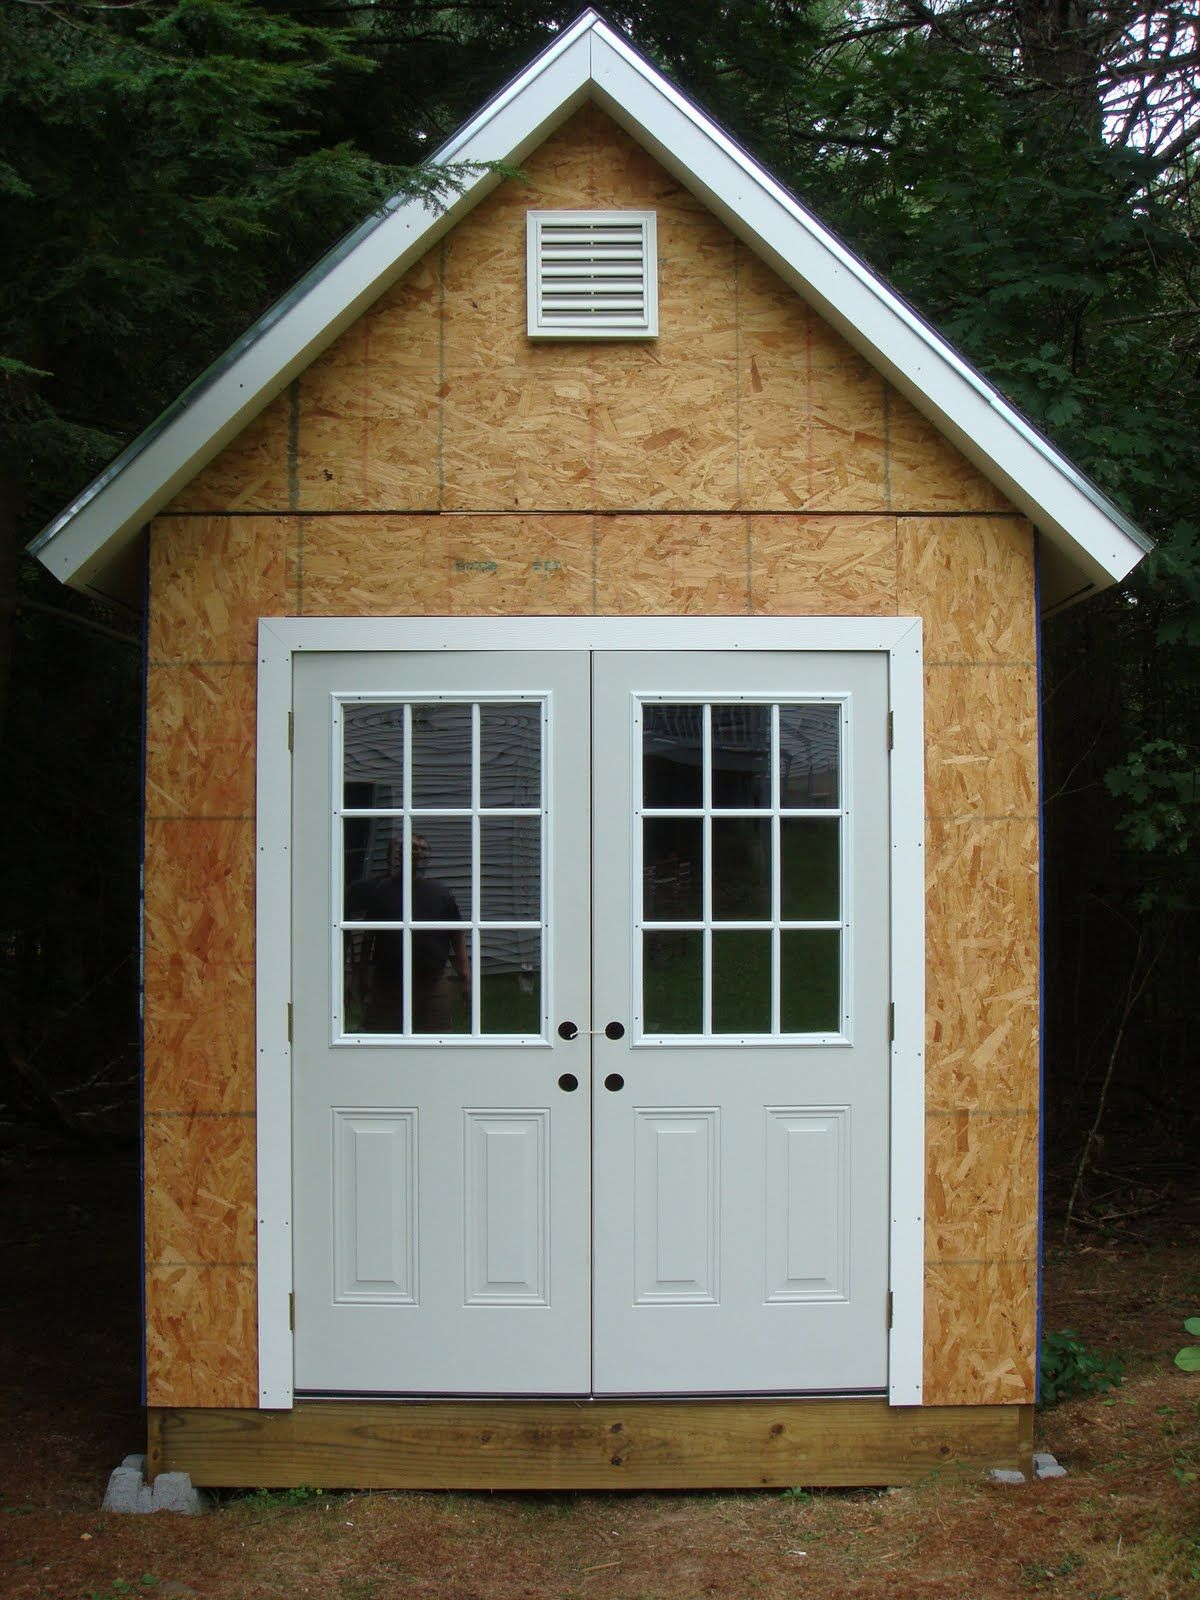 diy building shed door design tips shed blueprints - Shed Ideas Designs